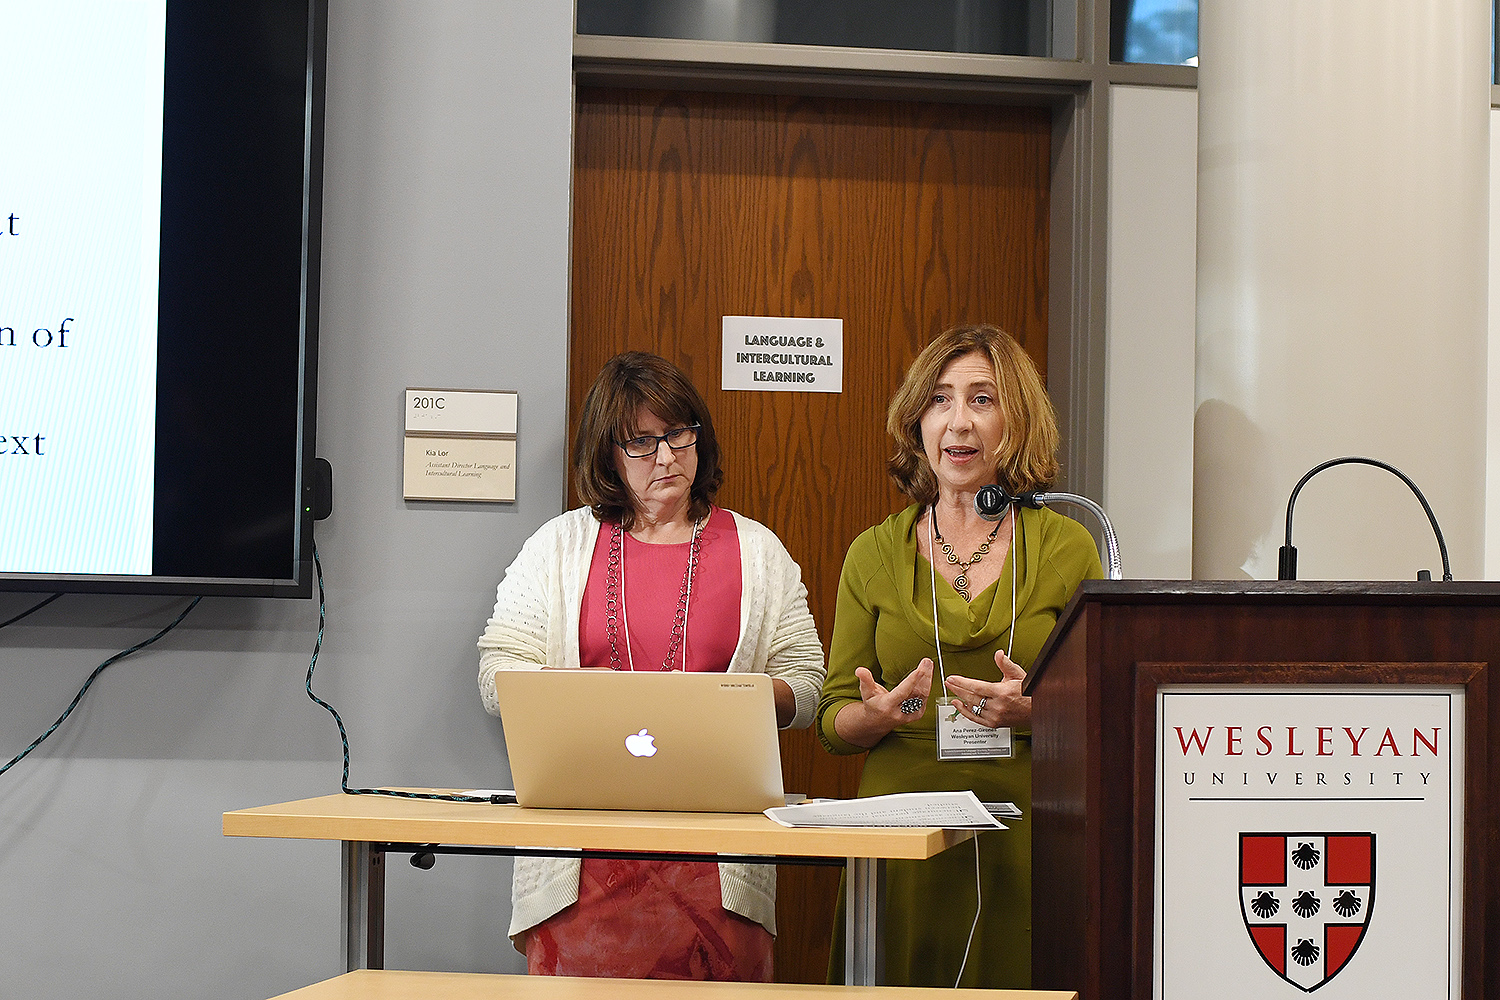 Louise Neary, adjunct associate professor of Spanish and Ana Perez-Girones, adjunct professor of Spanish, shared how students at Wesleyan are building Spanish language portfolios using a Mahara language pack. Perez-Girones also led a discussion on Wespañol, an intermediate-level online program for independent learners.